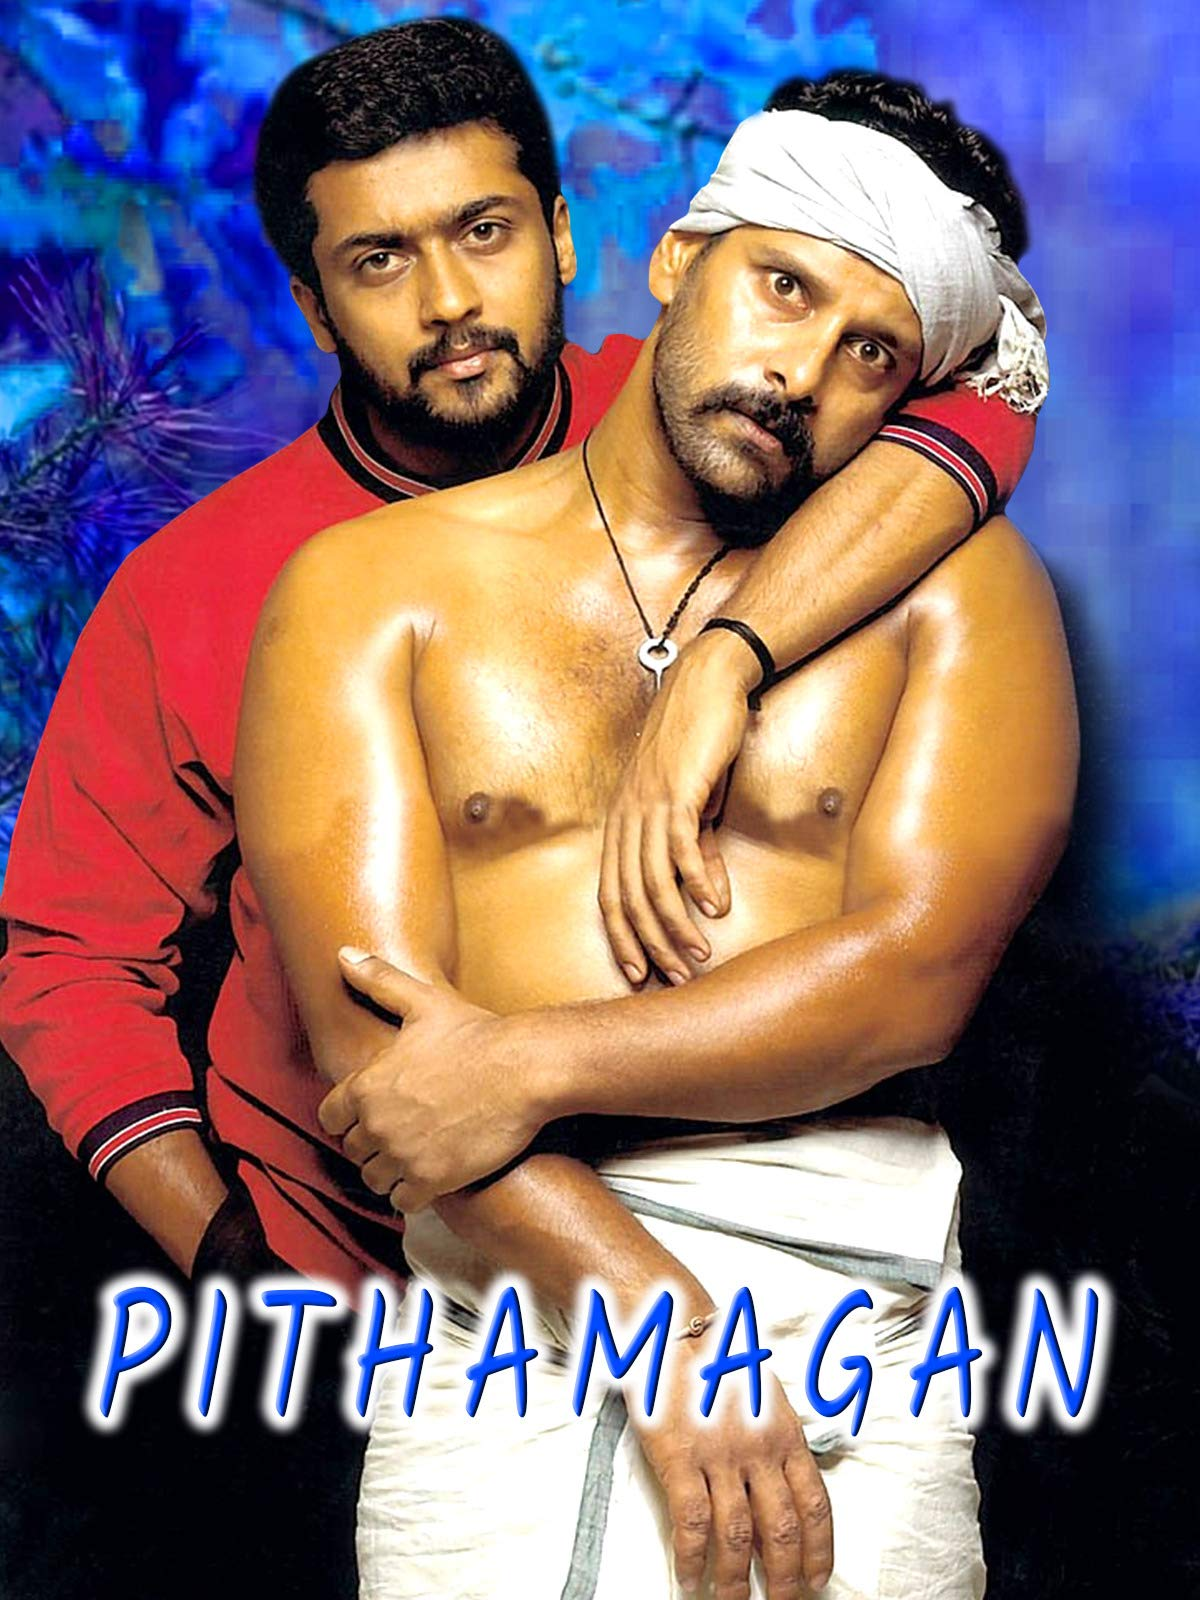 Pithamagan 2020 Hindi Dubbed 720p HDRip 1.5GB SouthFreak